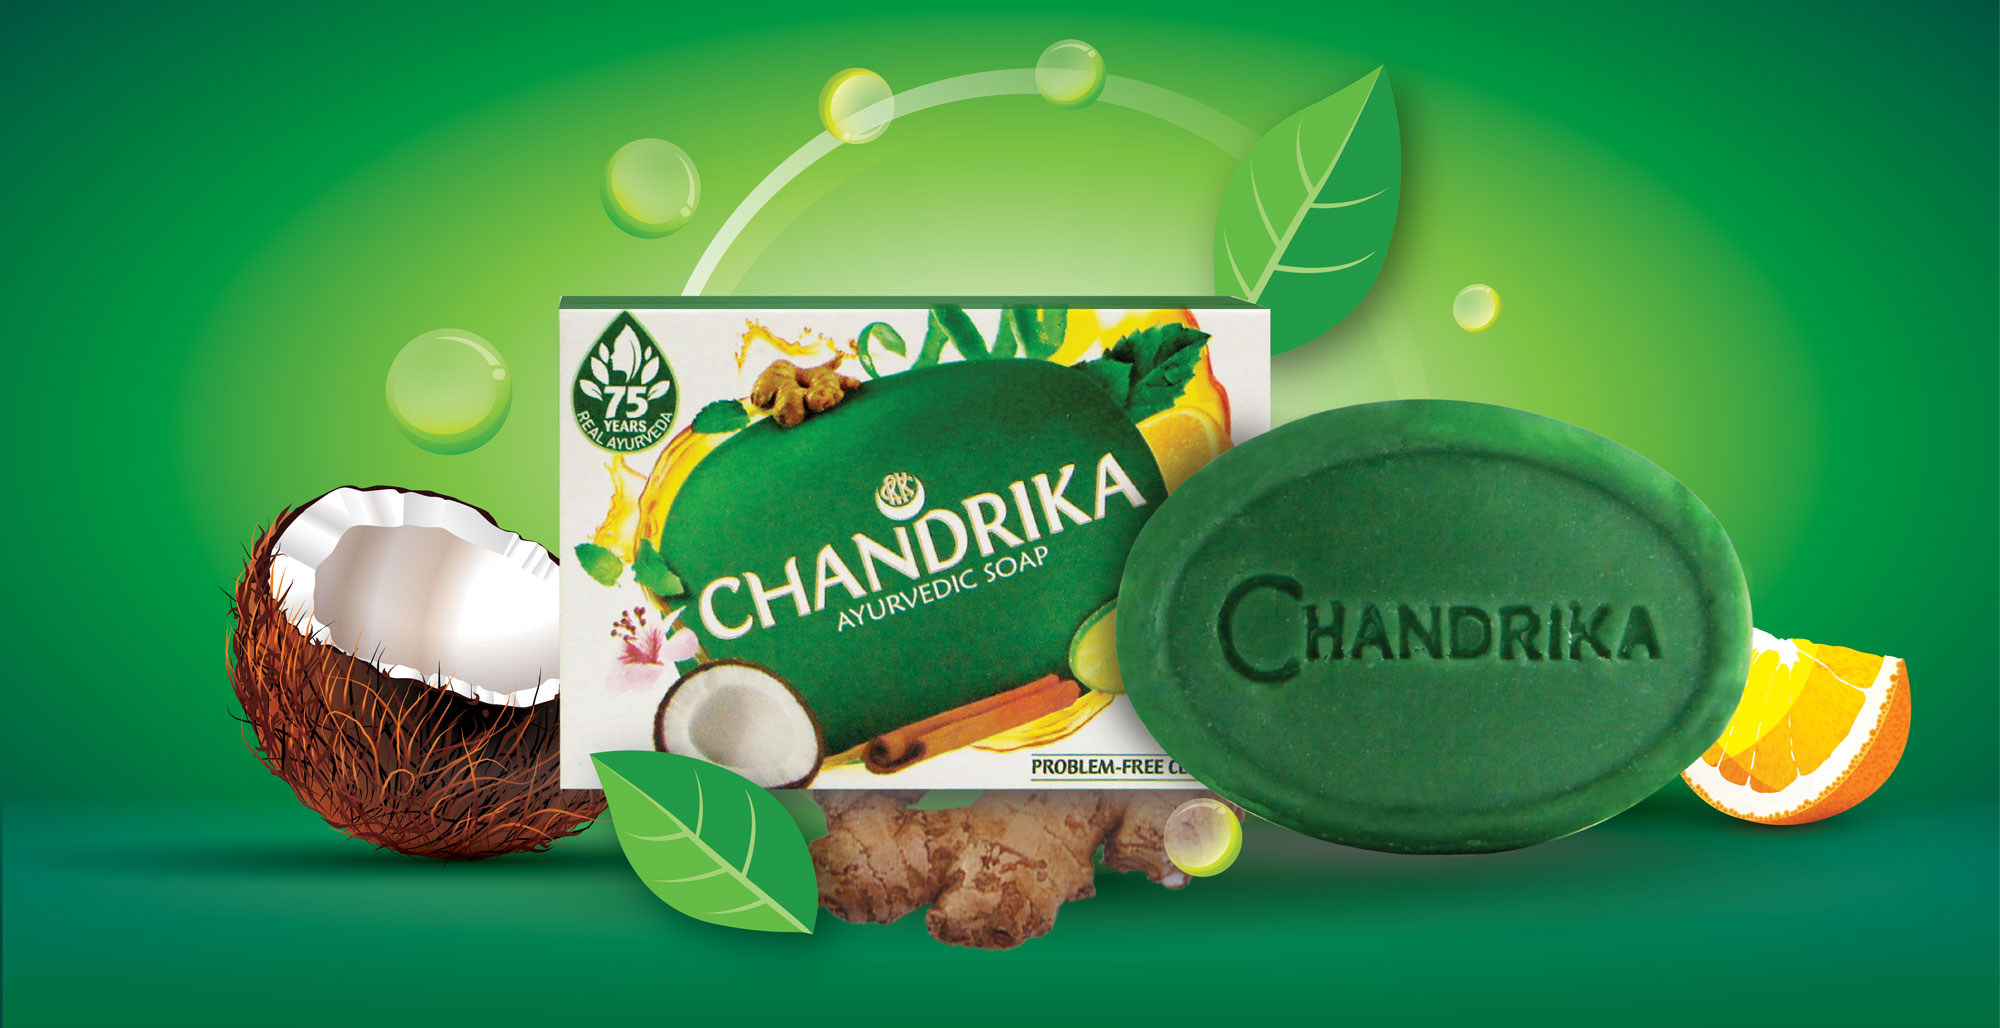 Chandrika Ayurvedic Soap - Intro